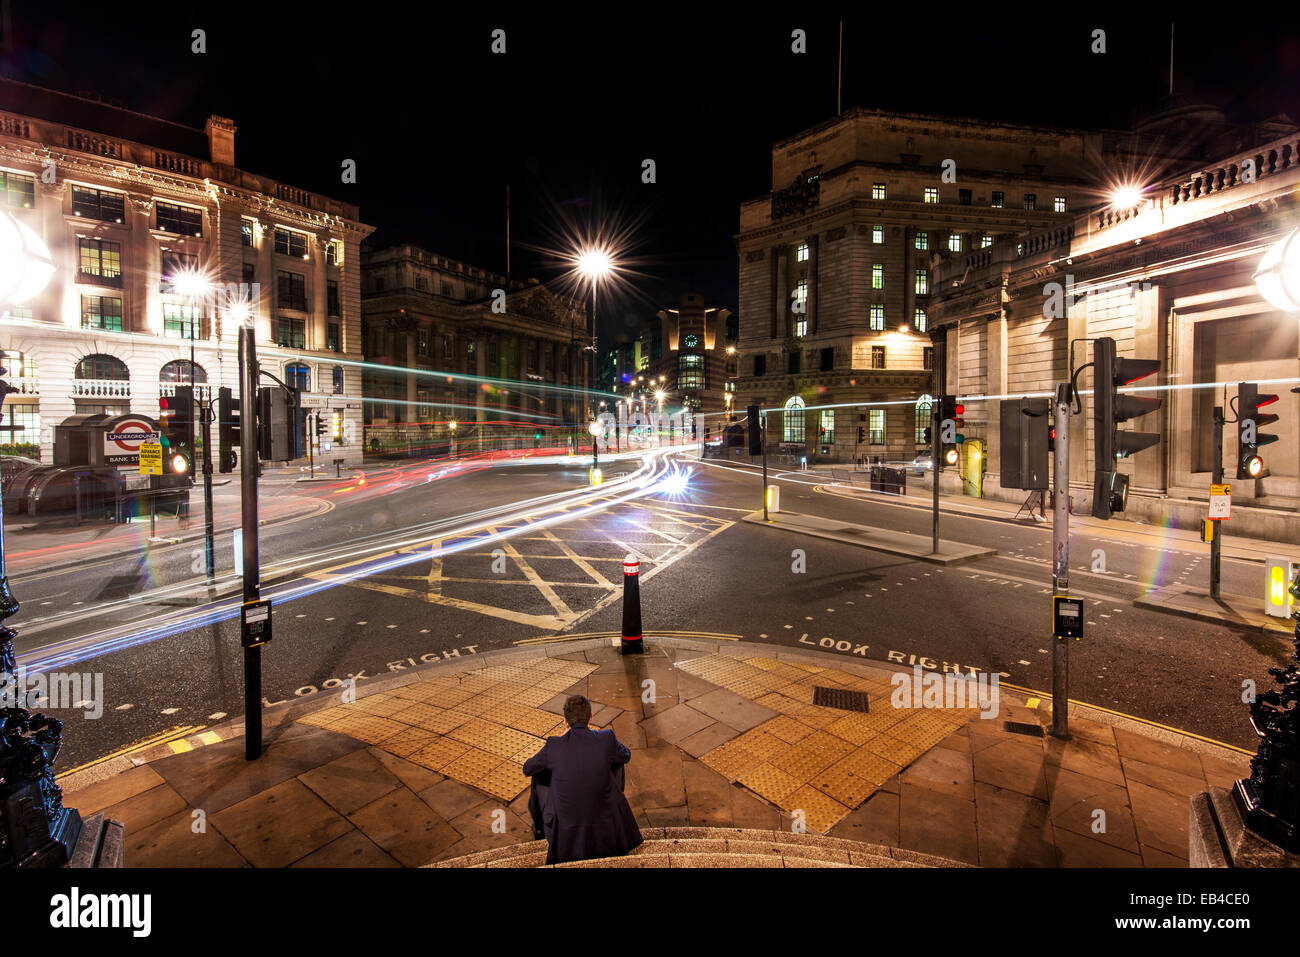 A single City worker sits on the steps of Bank Junction, City of London after midnight as cars drive by - Stock Image